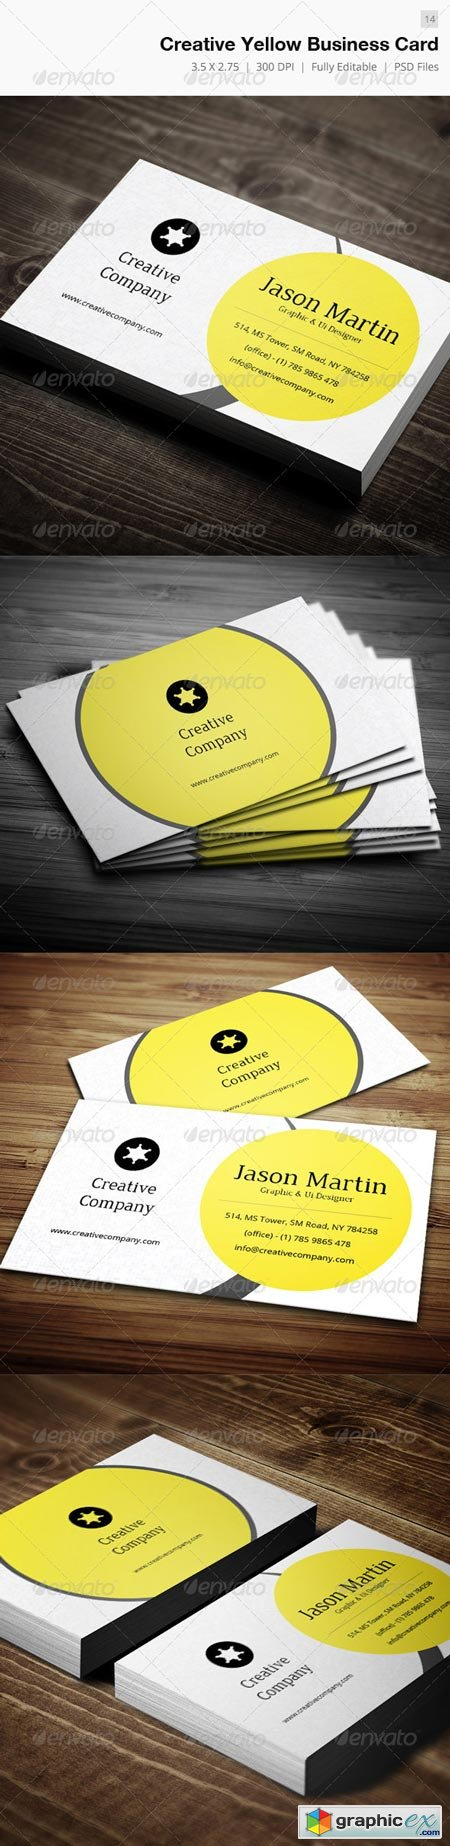 Creative Yellow Business Card - 14 4587483